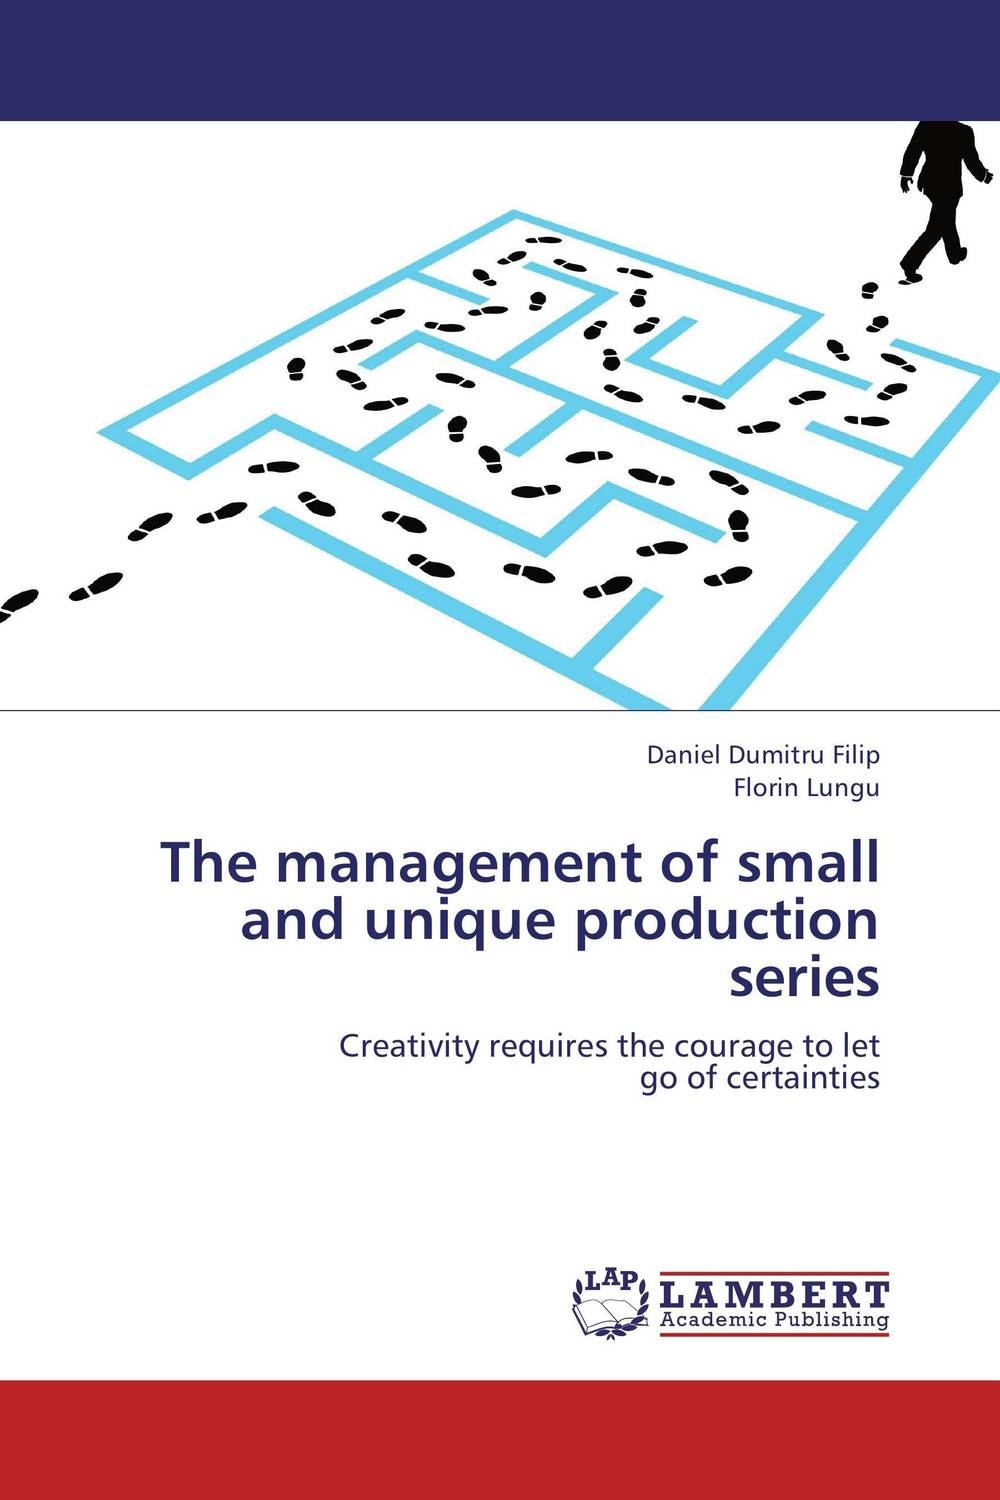 The management of small and unique production series